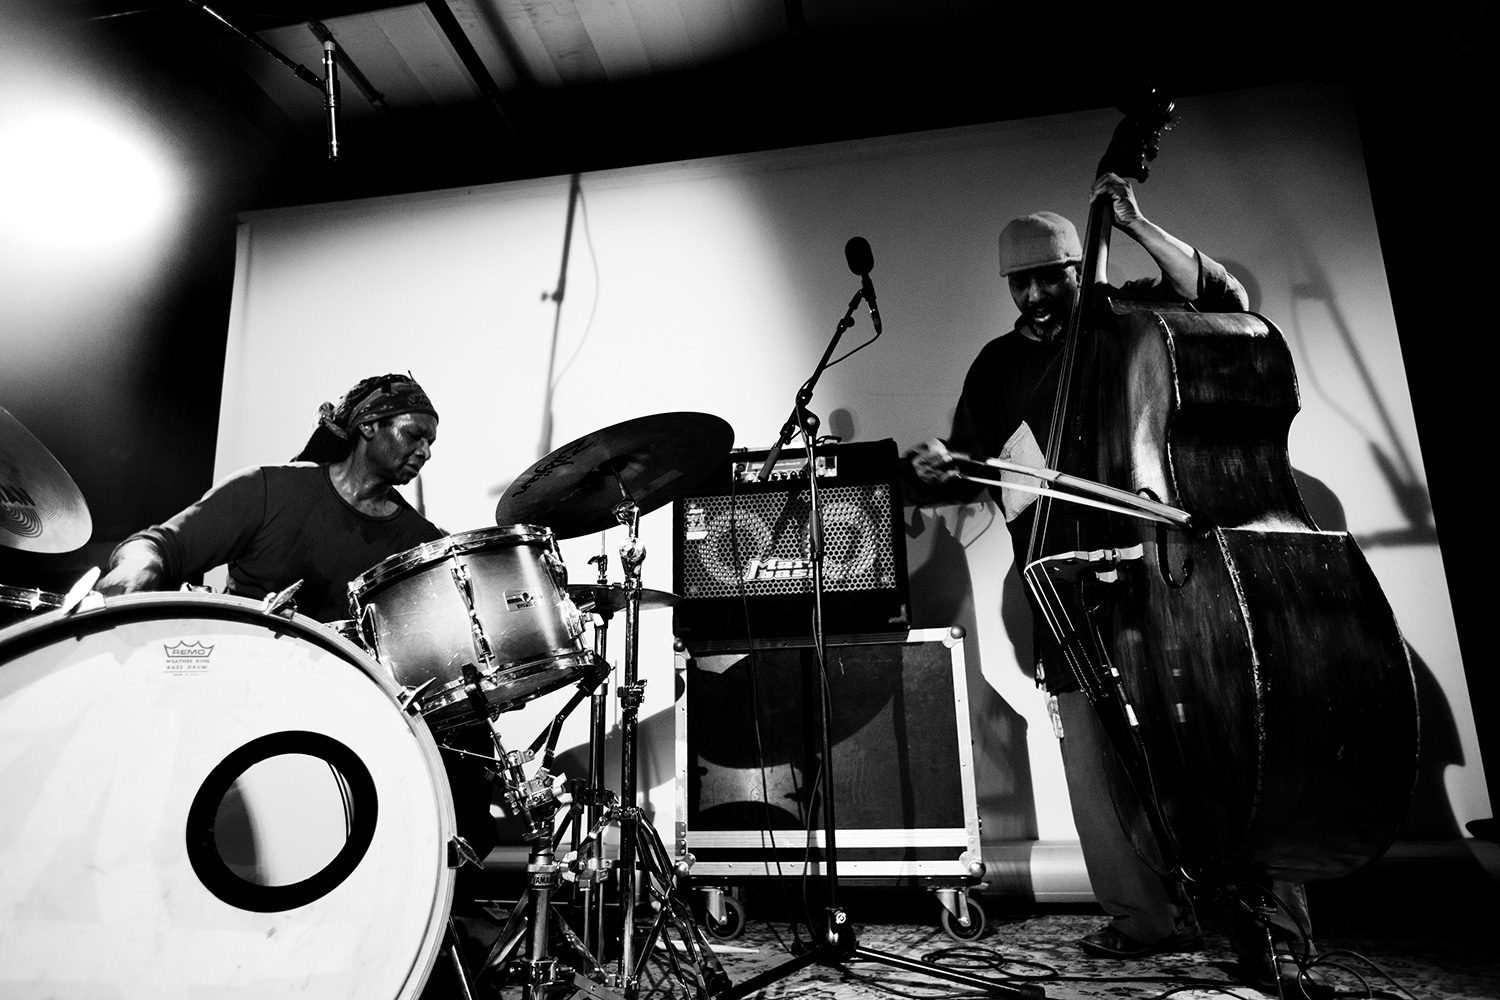 William Parker & Hamid Drake & John Dikeman by Laurent Orseau - Les Ateliers Claus - Brussels, Belgium #2